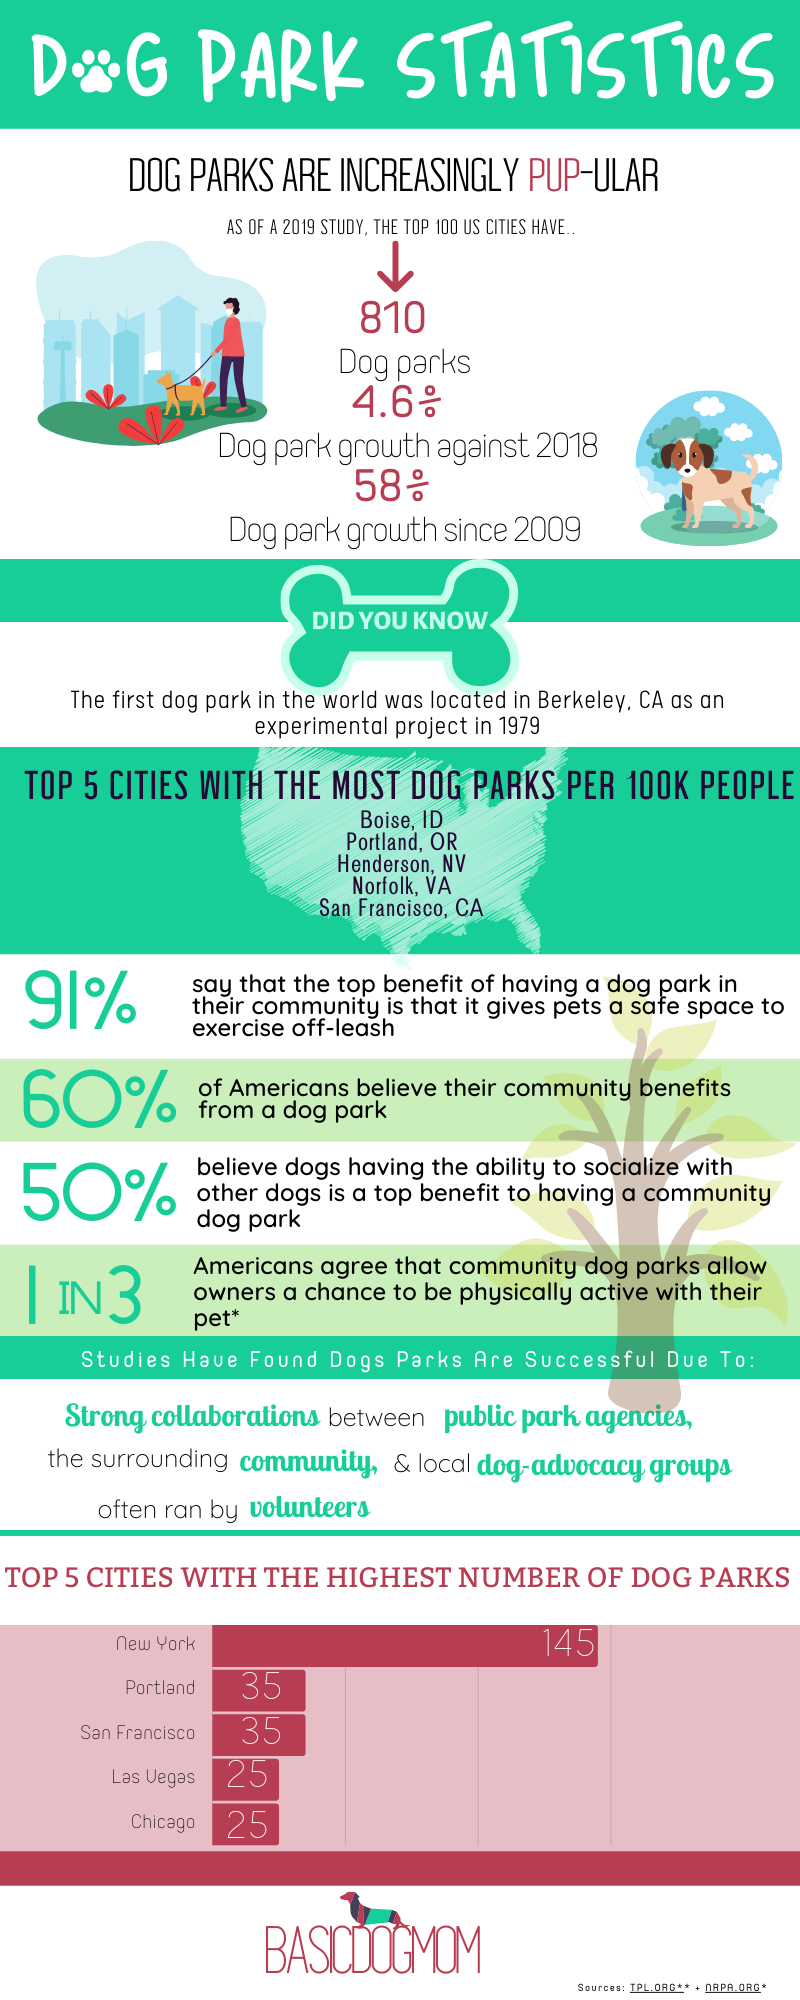 Dog park statistics that show how dog parks are increasing in popularity through the years and how it benefits both humans and dogs.